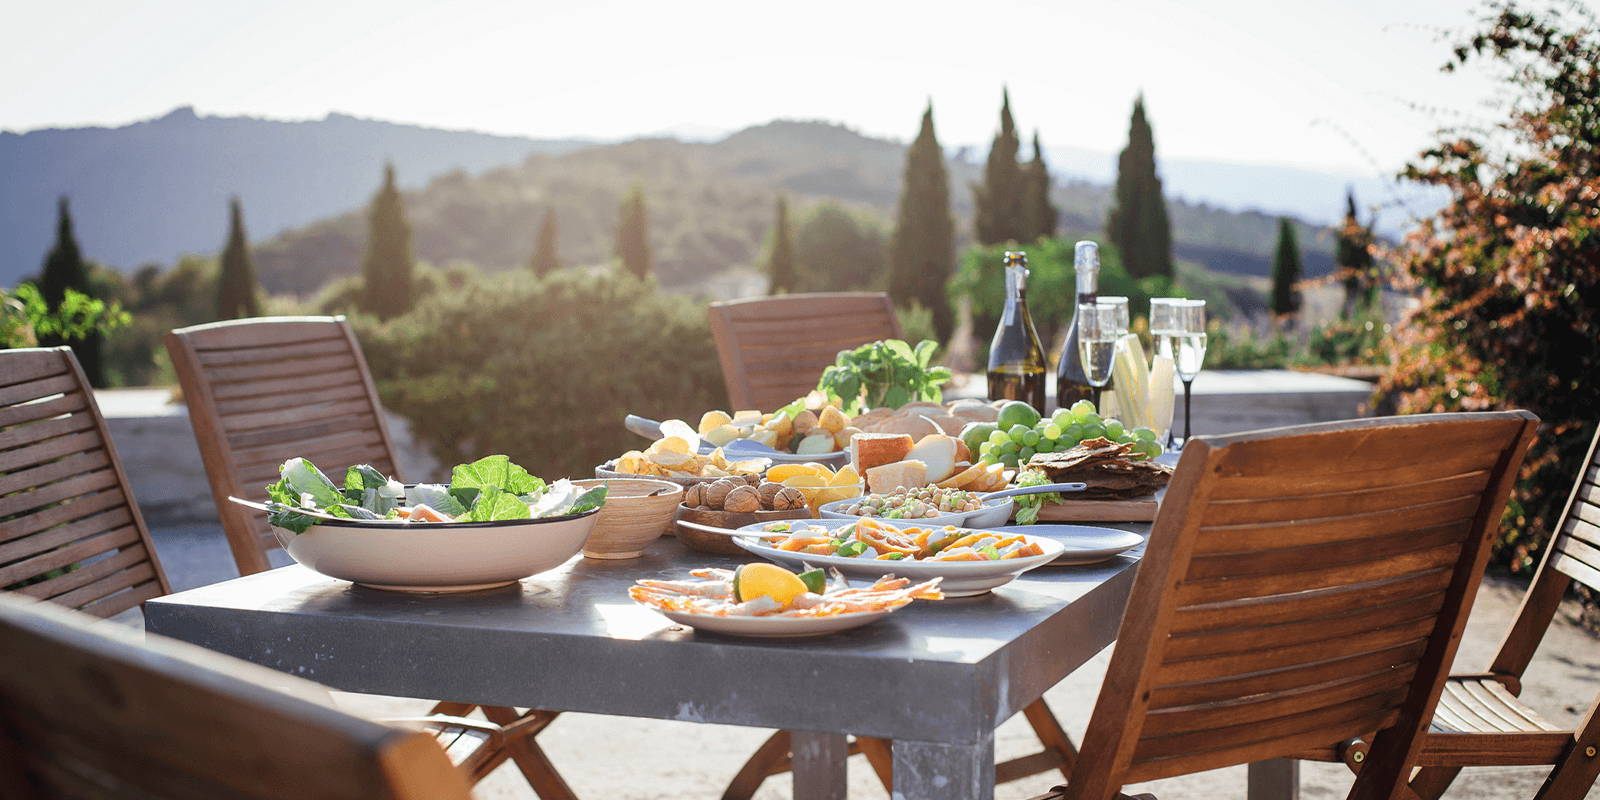 Outdoor table and chairs set with food and wine.